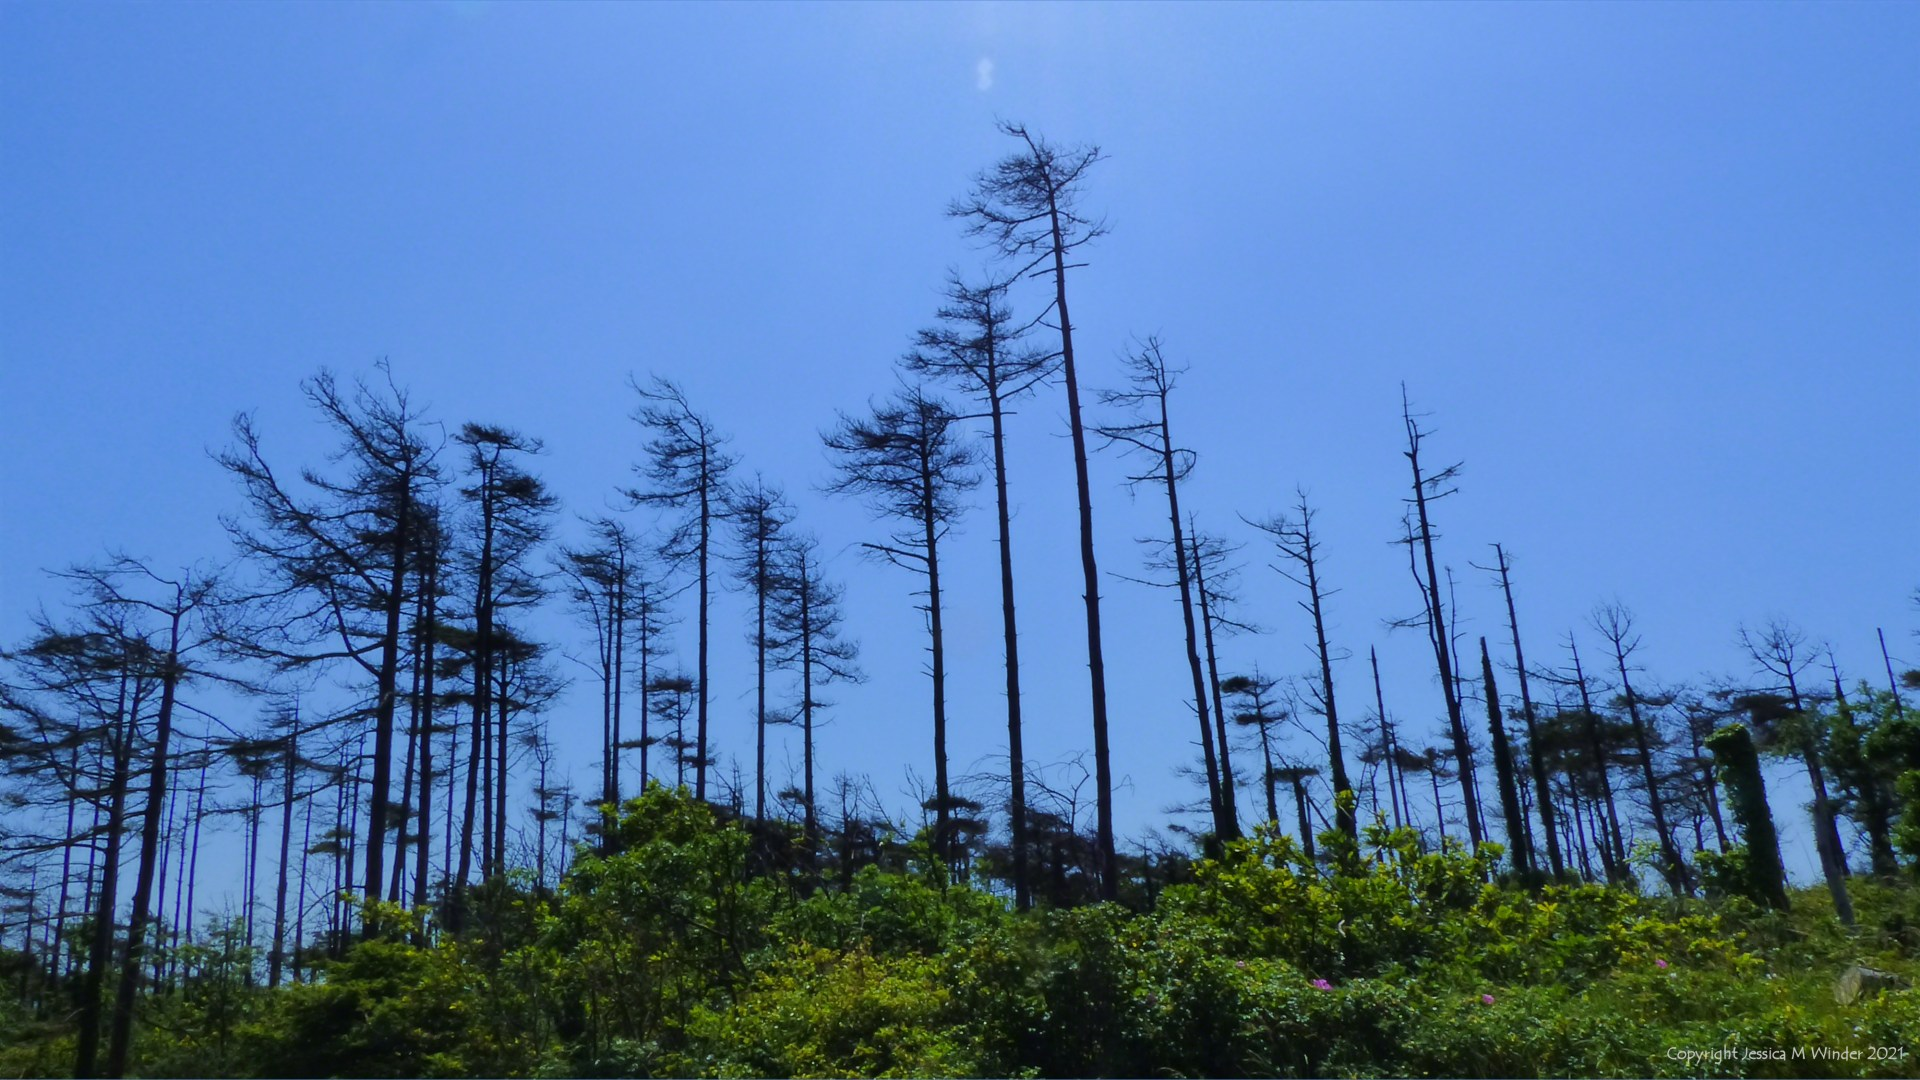 Dead or dying pine trees against a blue sky